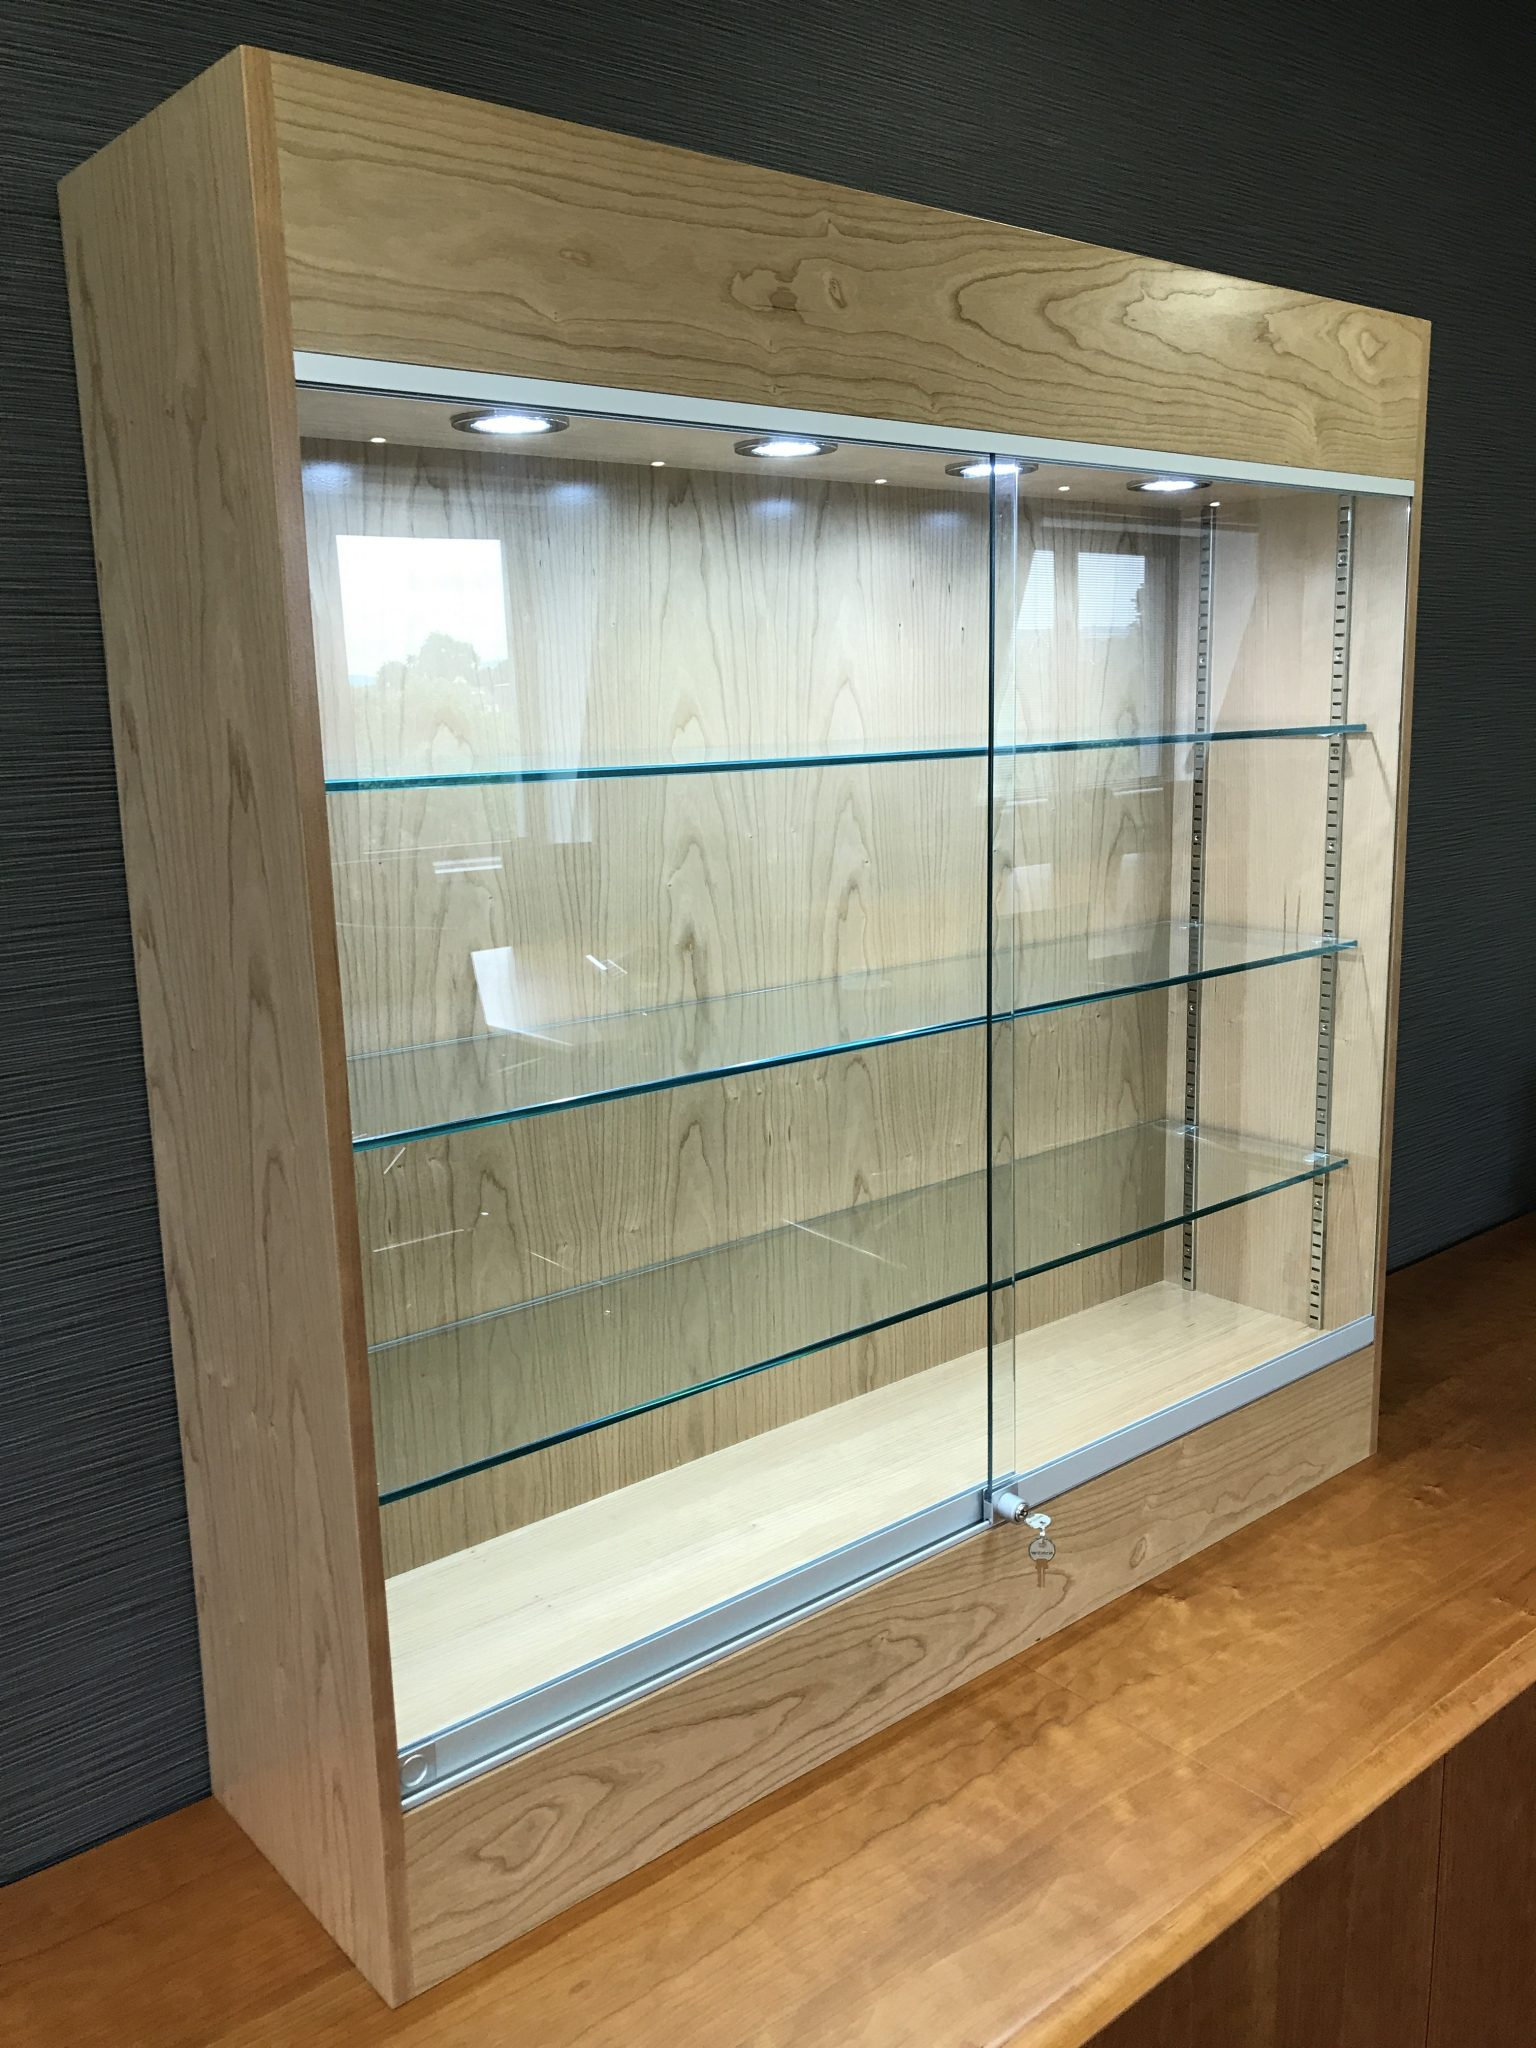 Wall mounted trophy display cabinet with LED lighting